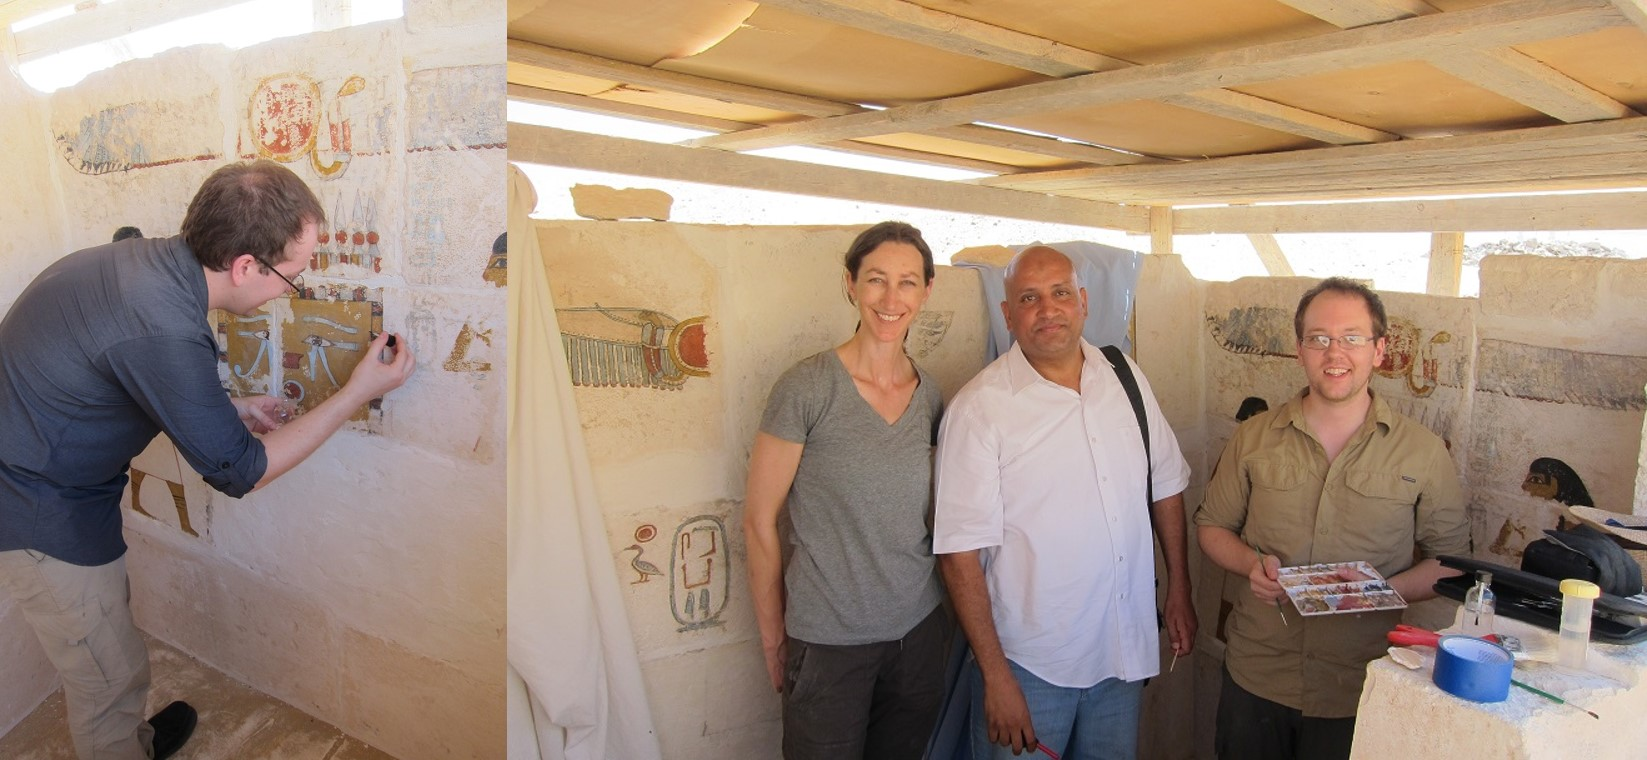 Danny working in the tomb (left) and myself, Yehia, one of the Egyptian conservation inspectors, and Danny in the tomb